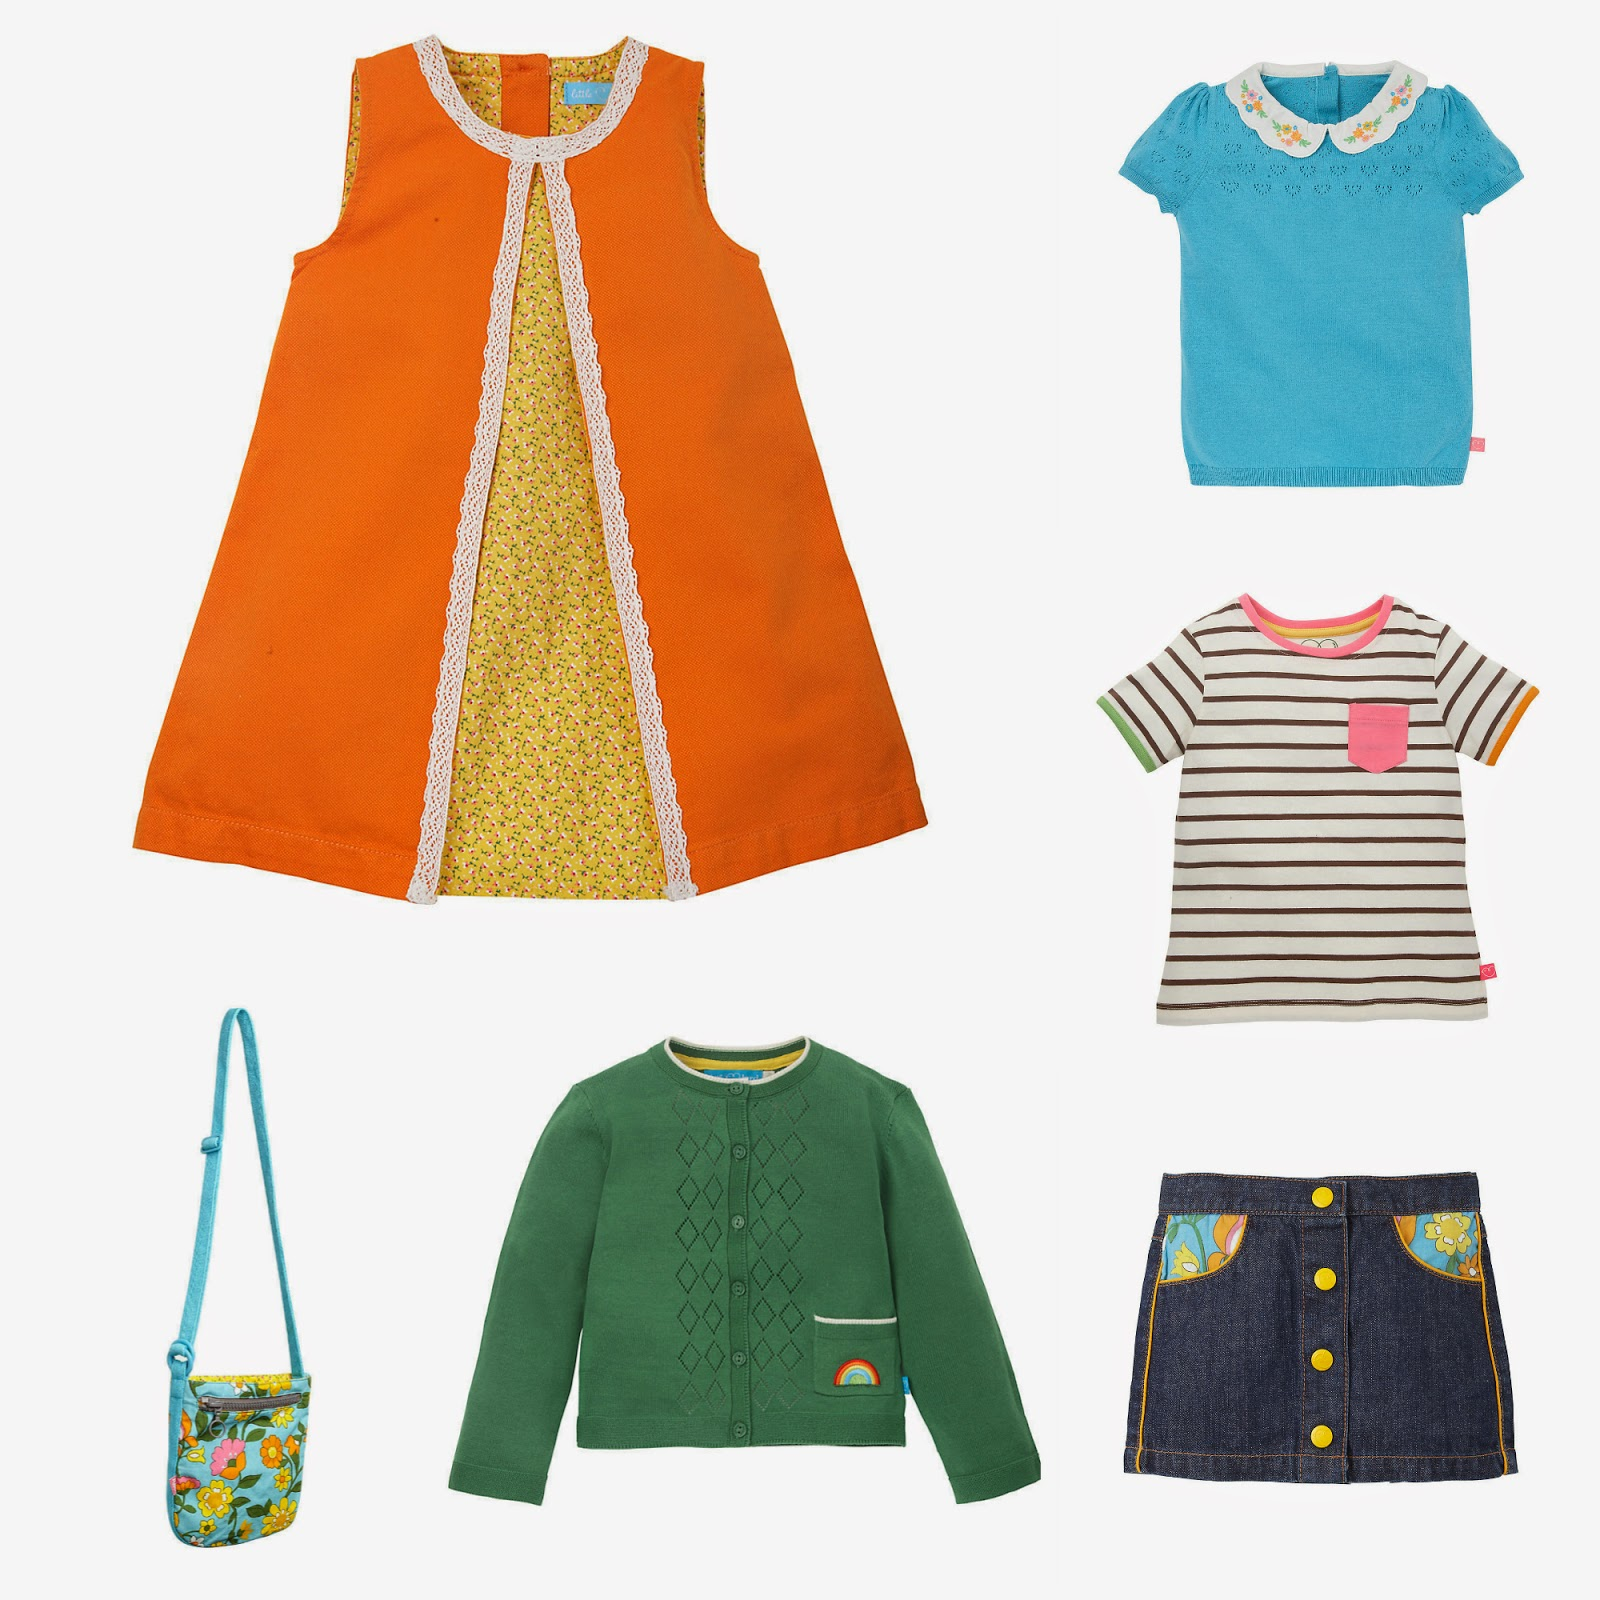 Why I Love the Little Bird by Jools Oliver at Mothercare collection - and what I want to see next! | mothercare | little bird | kooks Oliver |jamie oliver | kids fashion | collection } new collection | retro clothing for kids | little bird by jools | little bird | mamasvib | rainbow | birthday pyjamas | printed clothes for kids | vintage style | mothercare | instagram jamie oliver | mamas very important baby